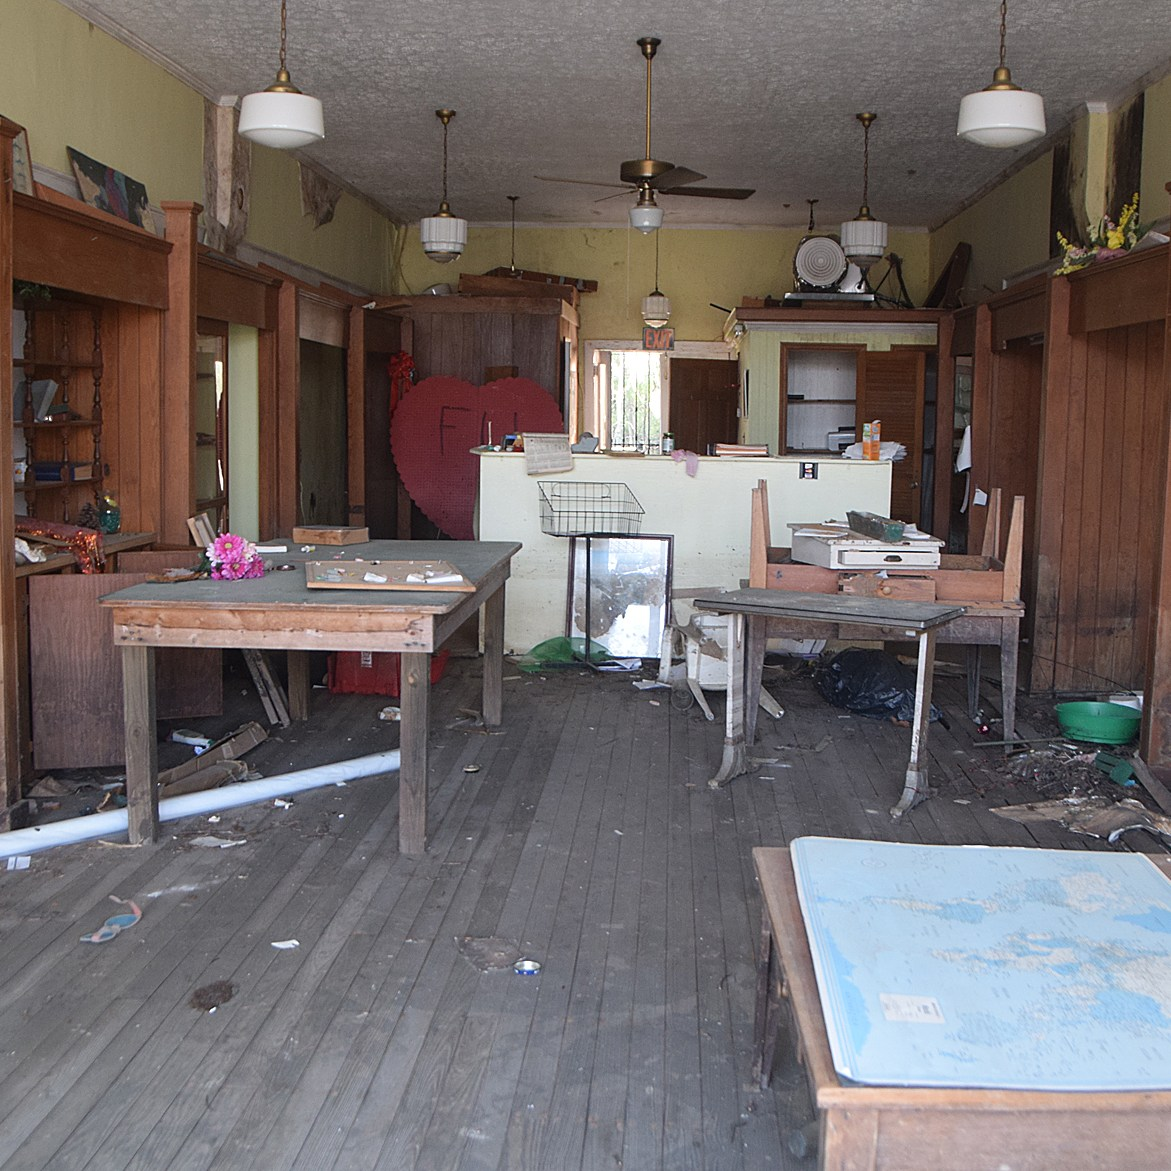 The interior of an abandoned downtown Fair Bluff business shows the extent of the damage from Hurricane Florence.